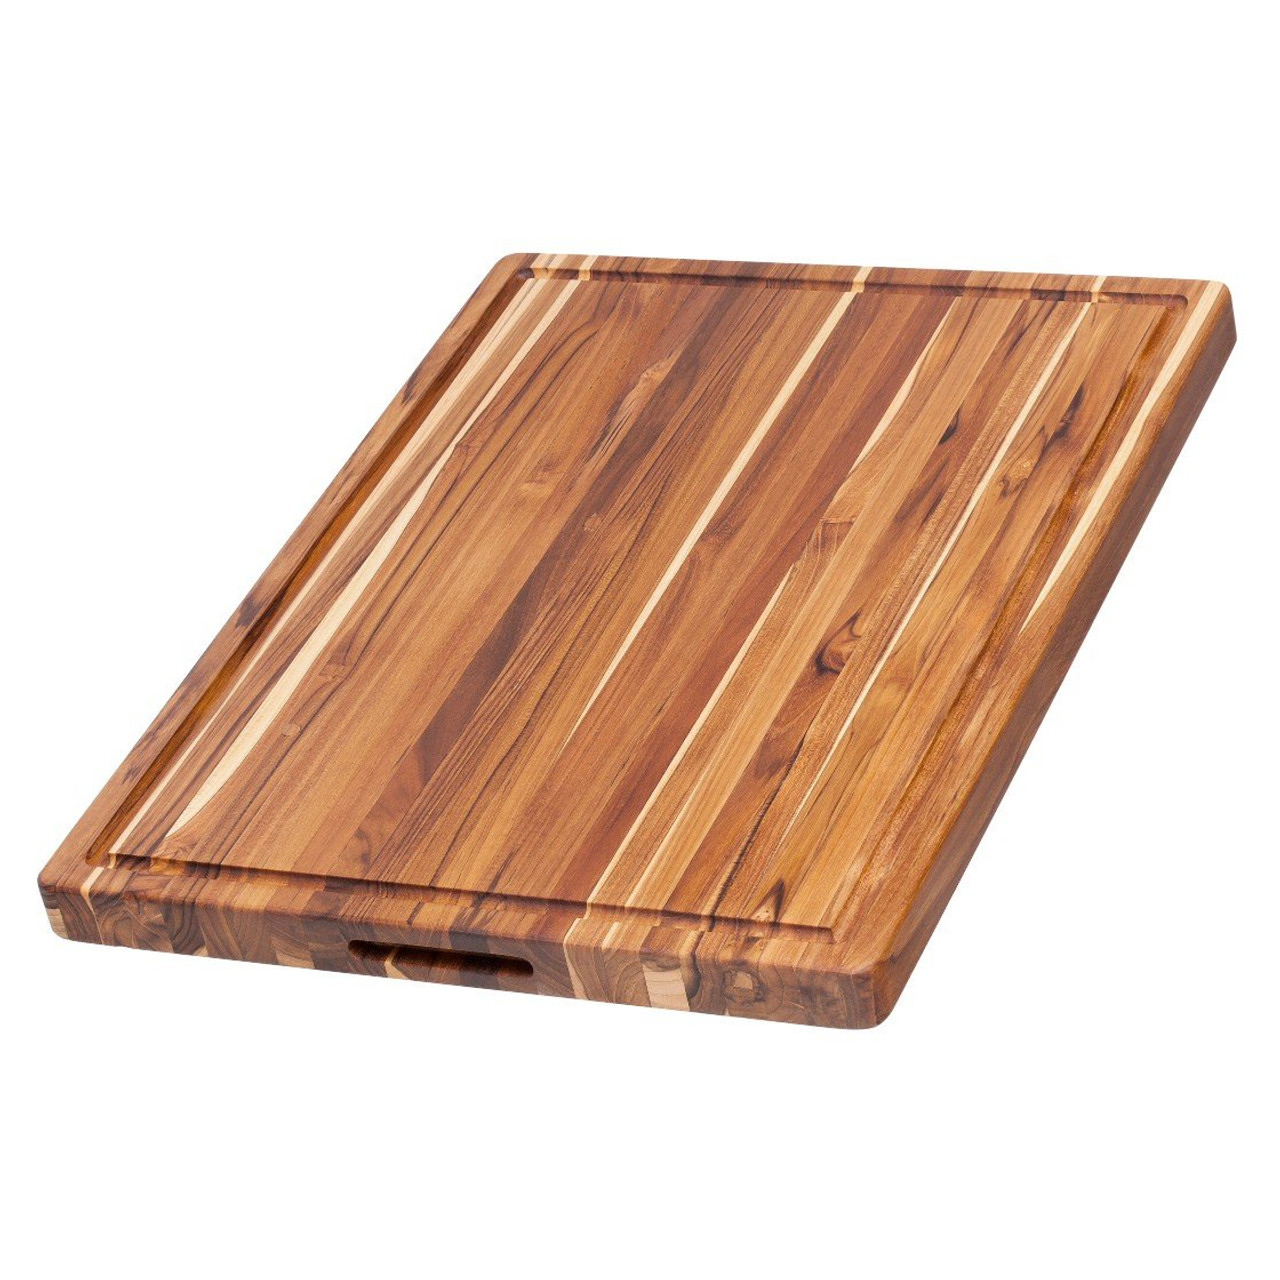 TEAKHAUS RECTANGLE BOARD W/ GRIP AND JUICE CANAL 20X15